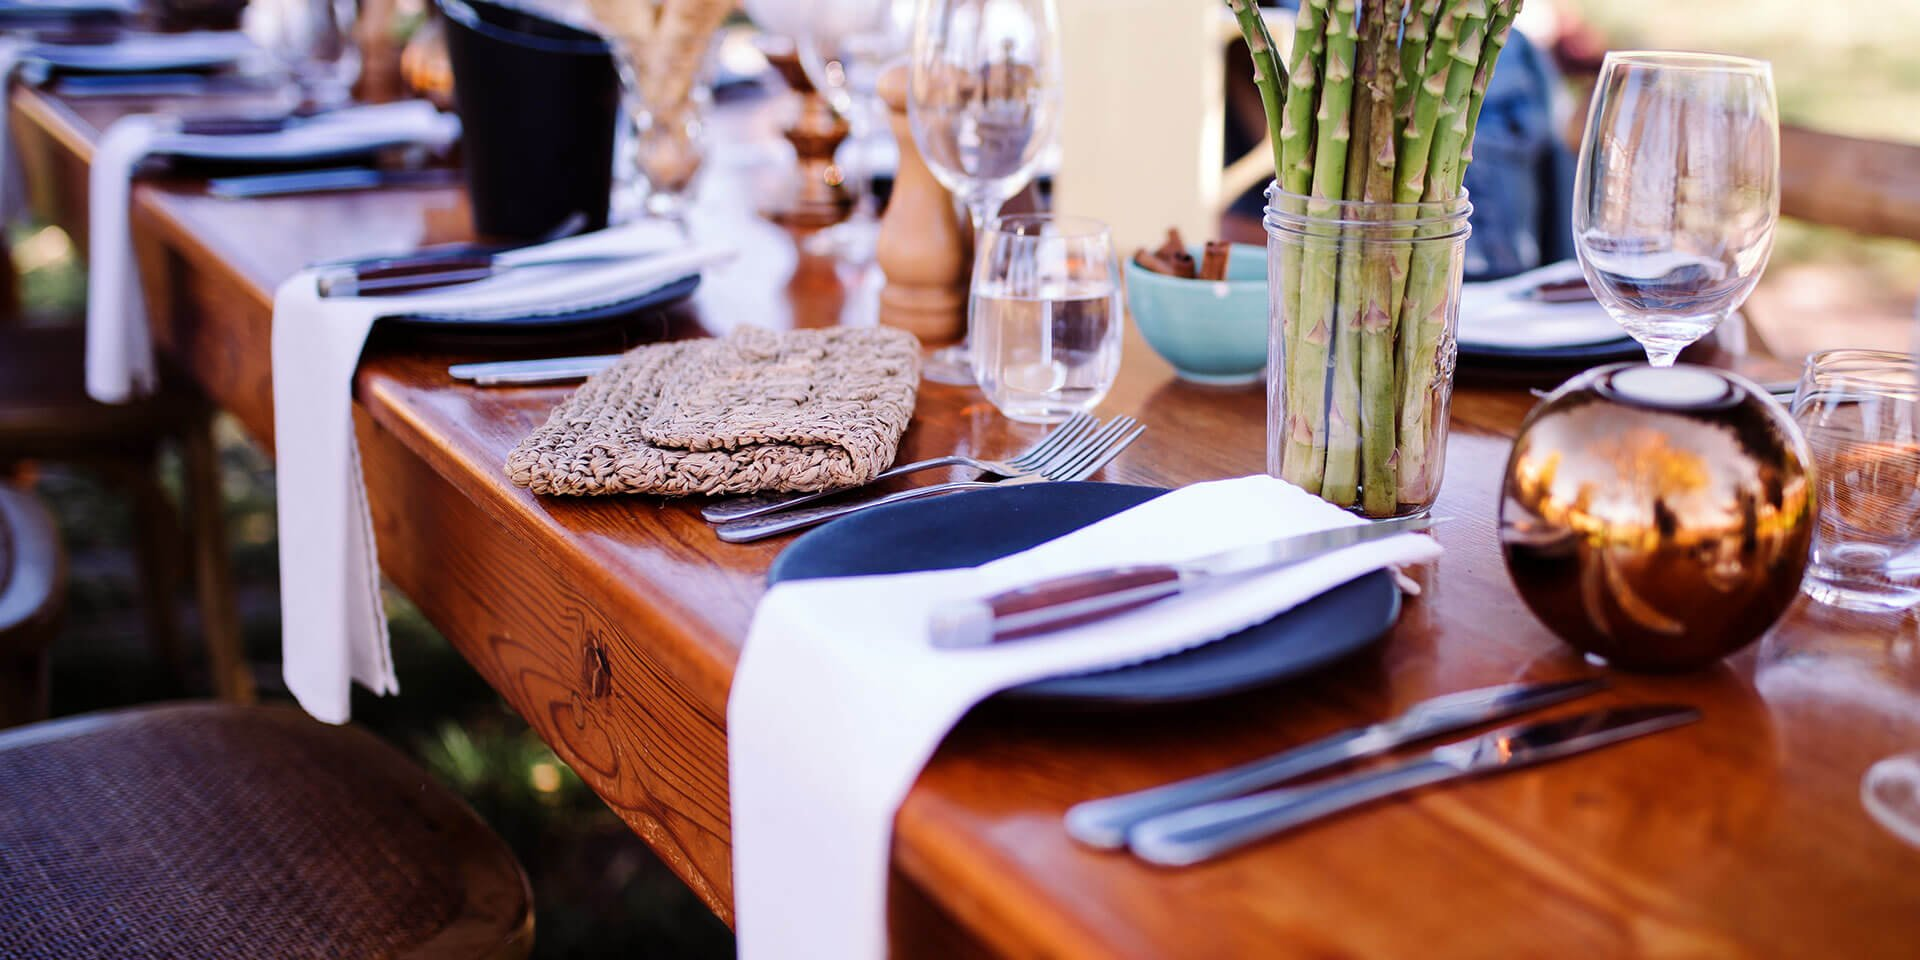 4 ways technology is revolutionizing the restaurant experience